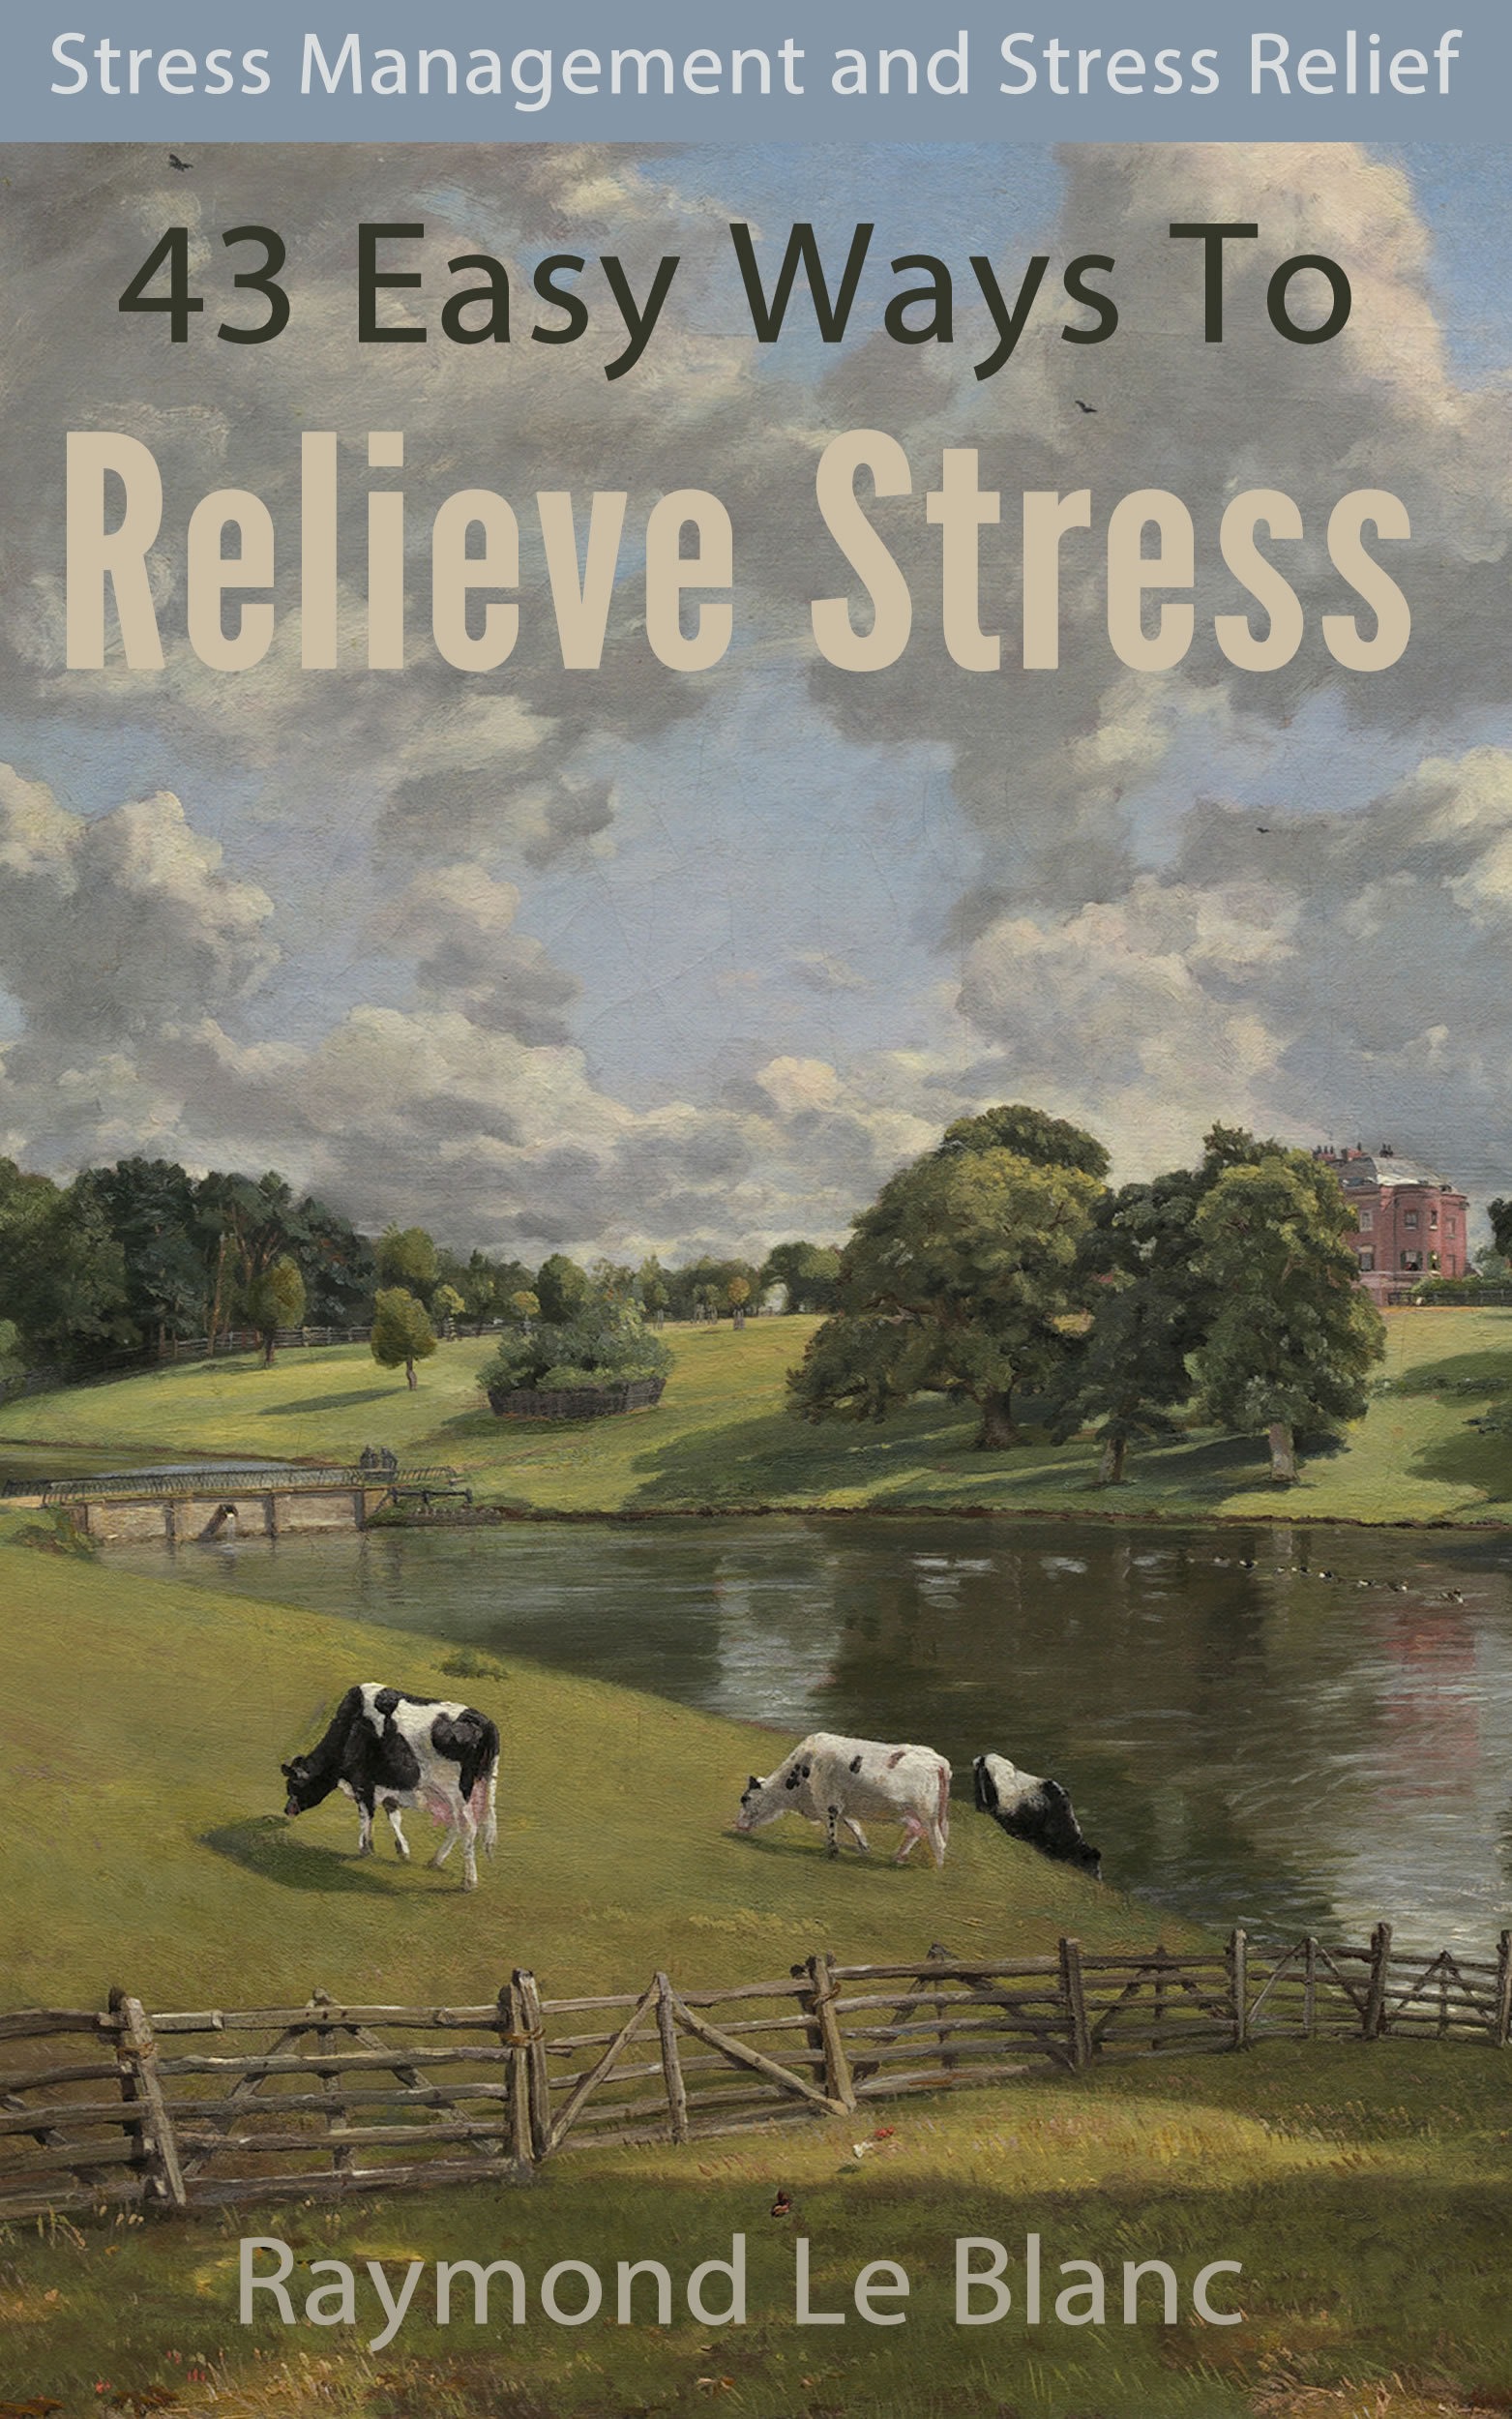 43 Easy Ways To Relieve Stress. Stress Management and Stress Relief.